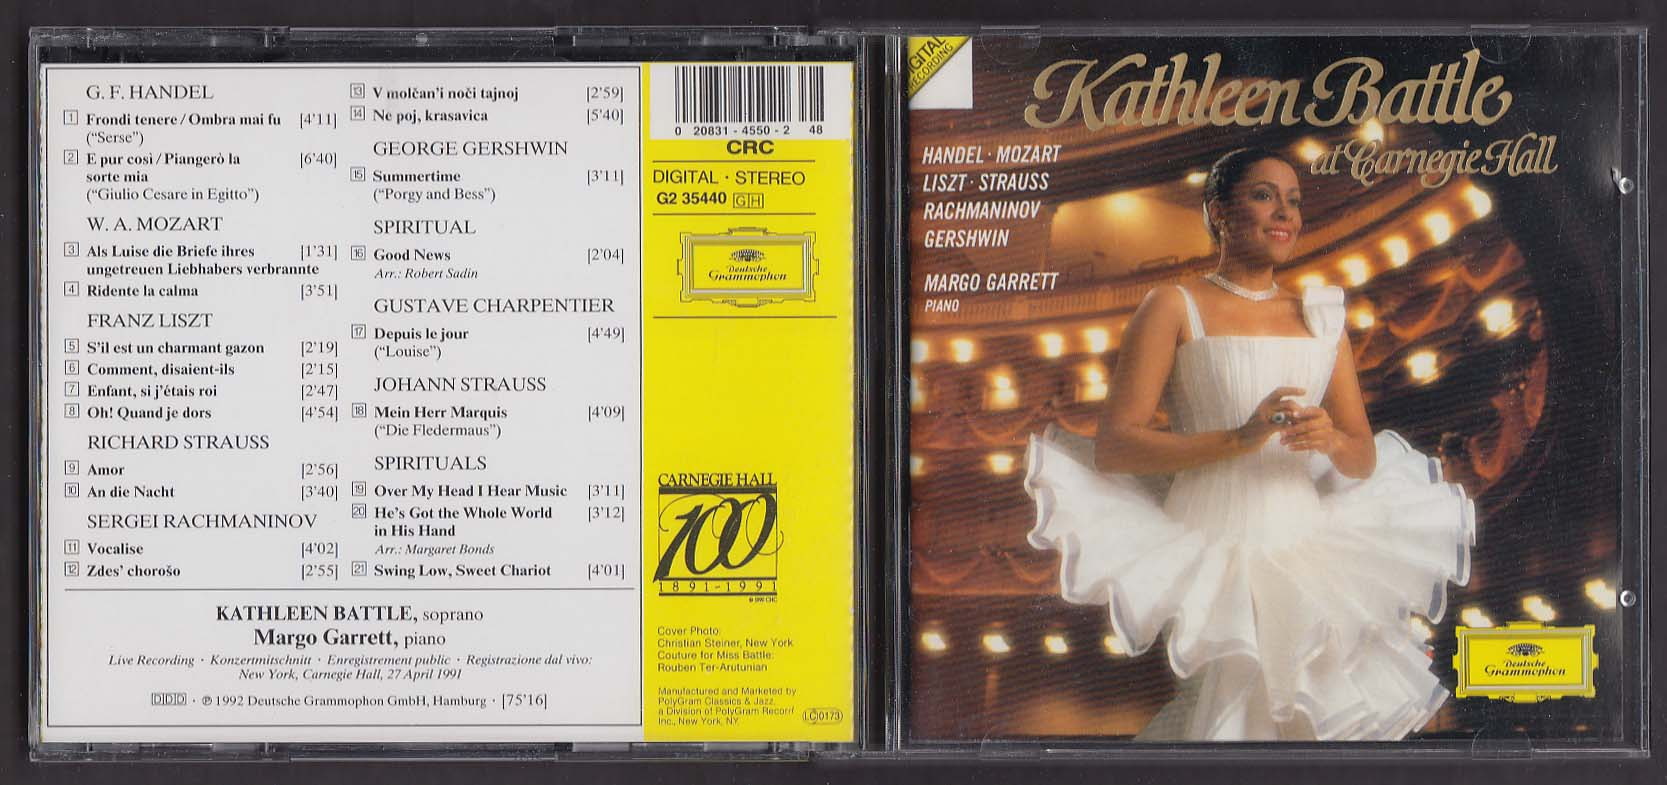 Image for Kathleen Battle at Carnegie Hall G2 35440 Deutsche Grammphon CD 1992